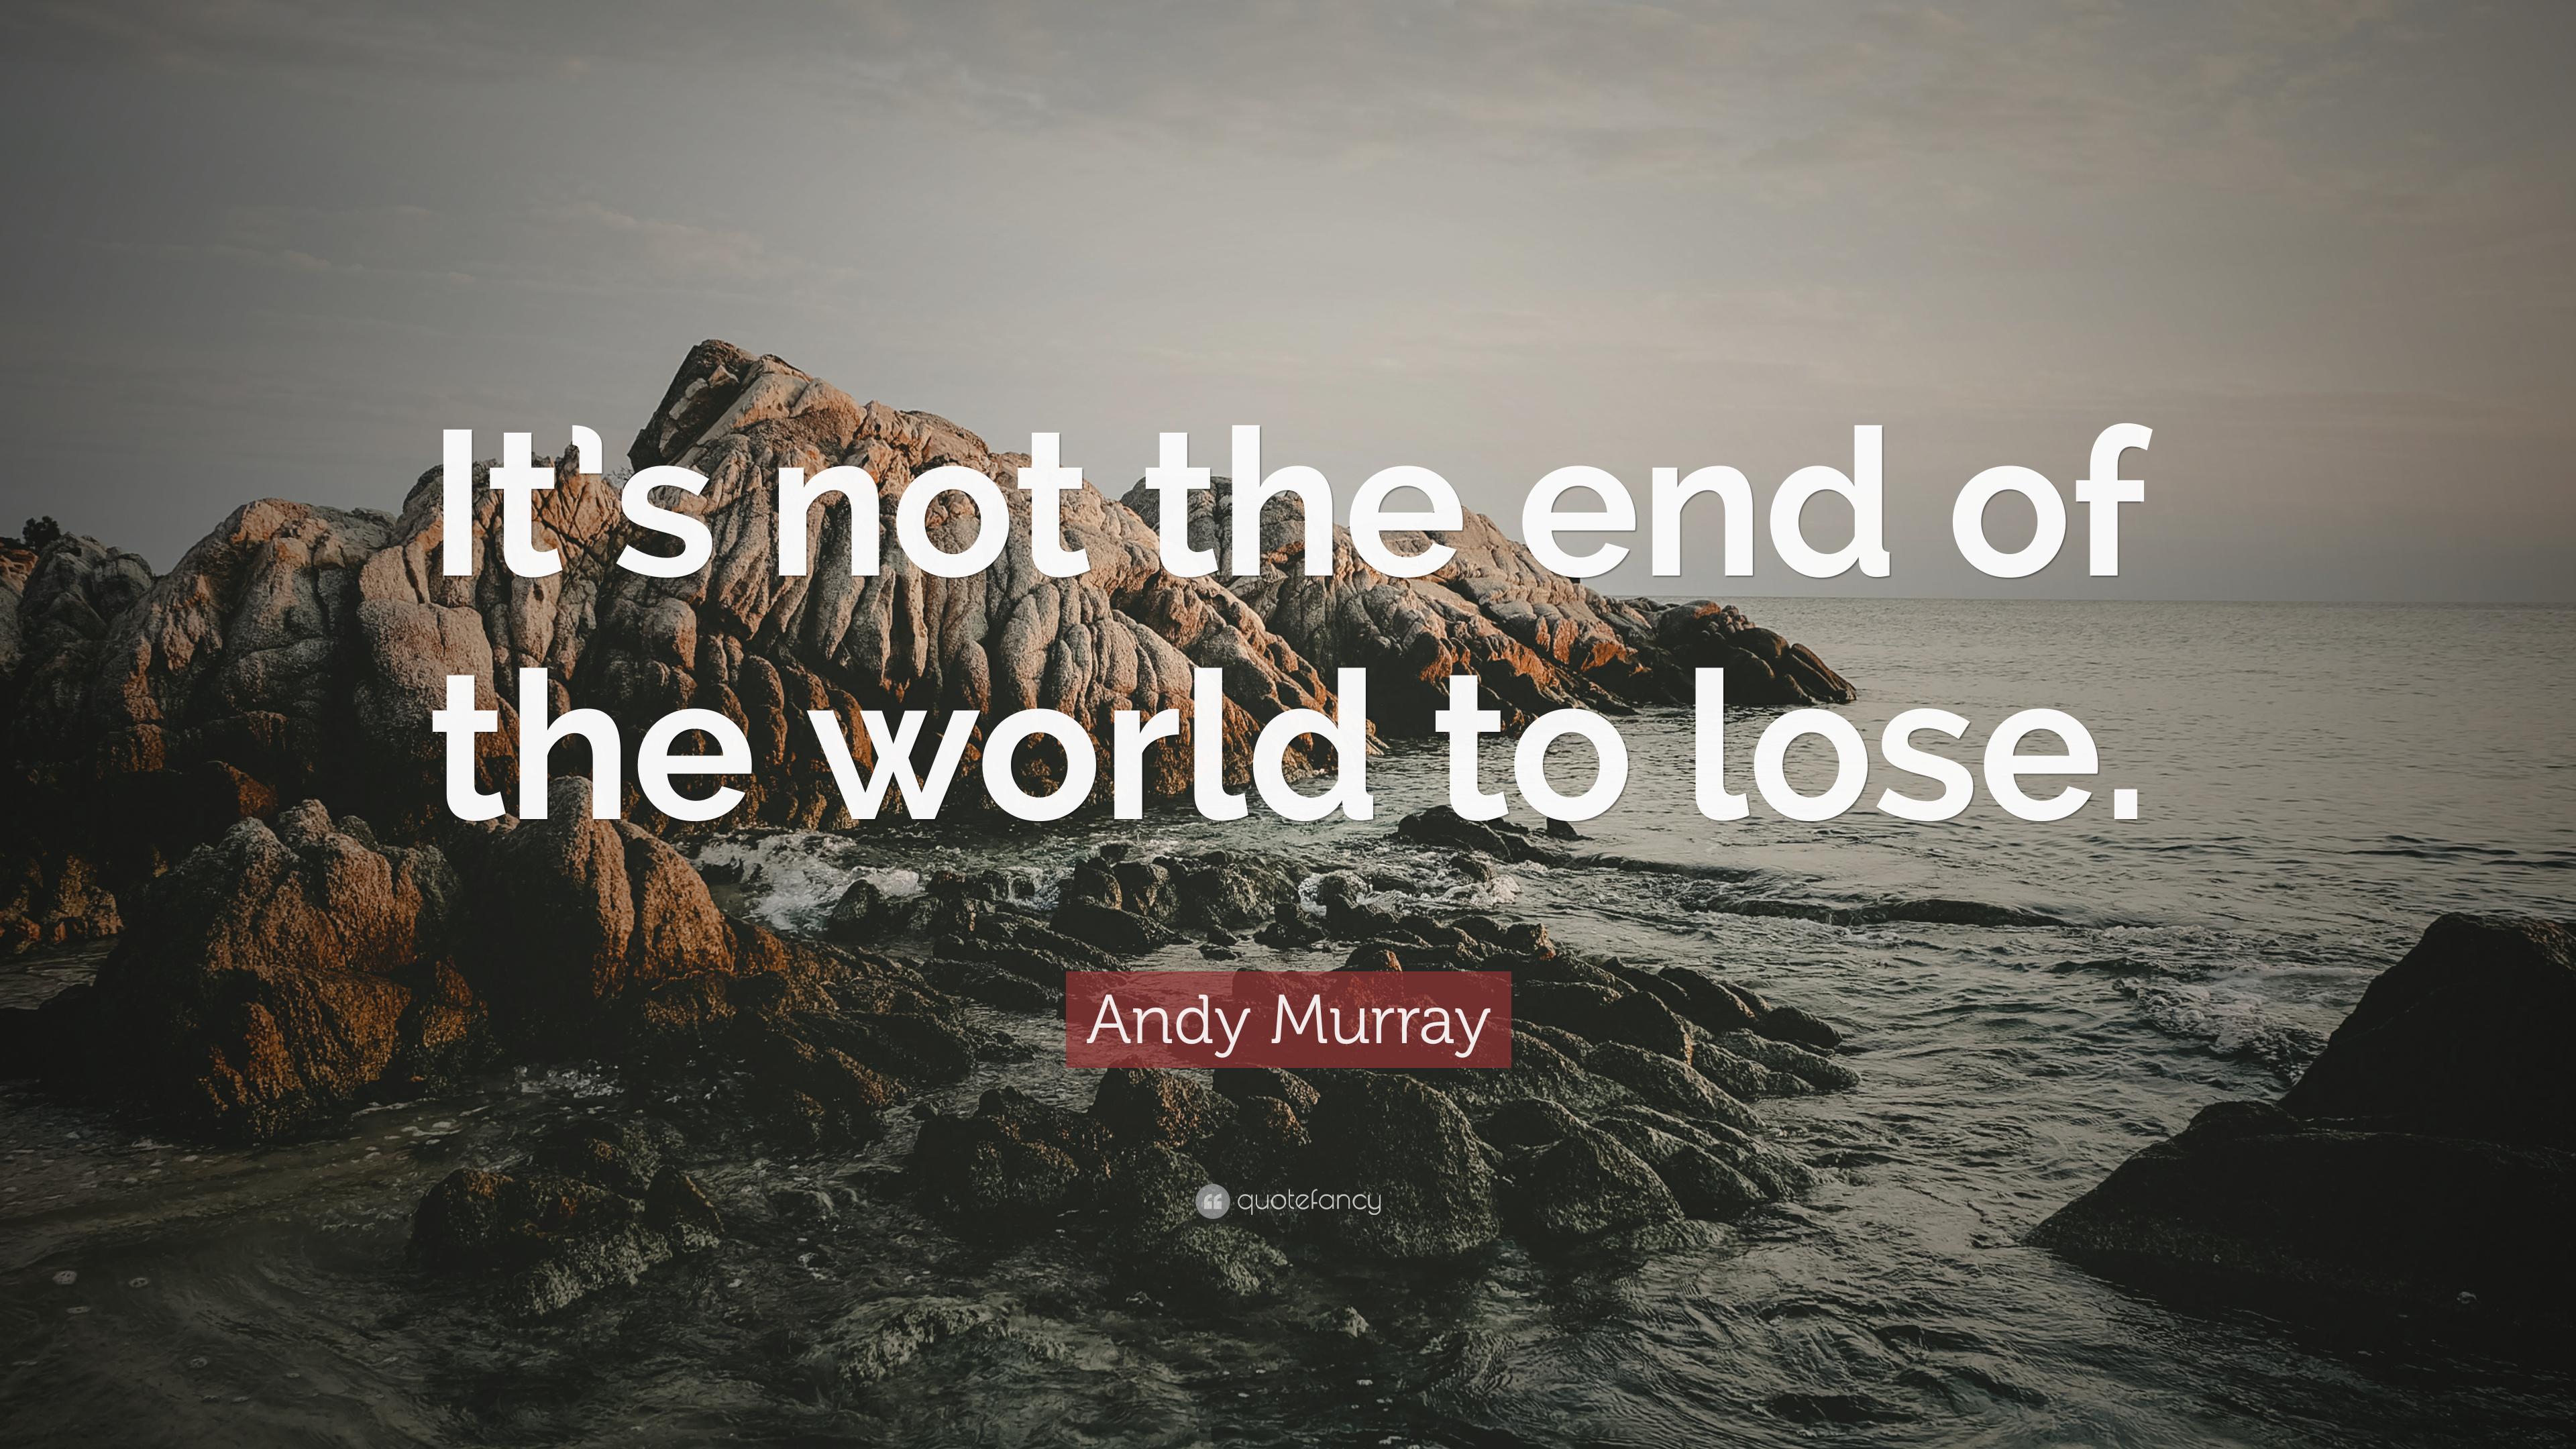 Andy Murray Quote It S Not The End Of The World To Lose 12